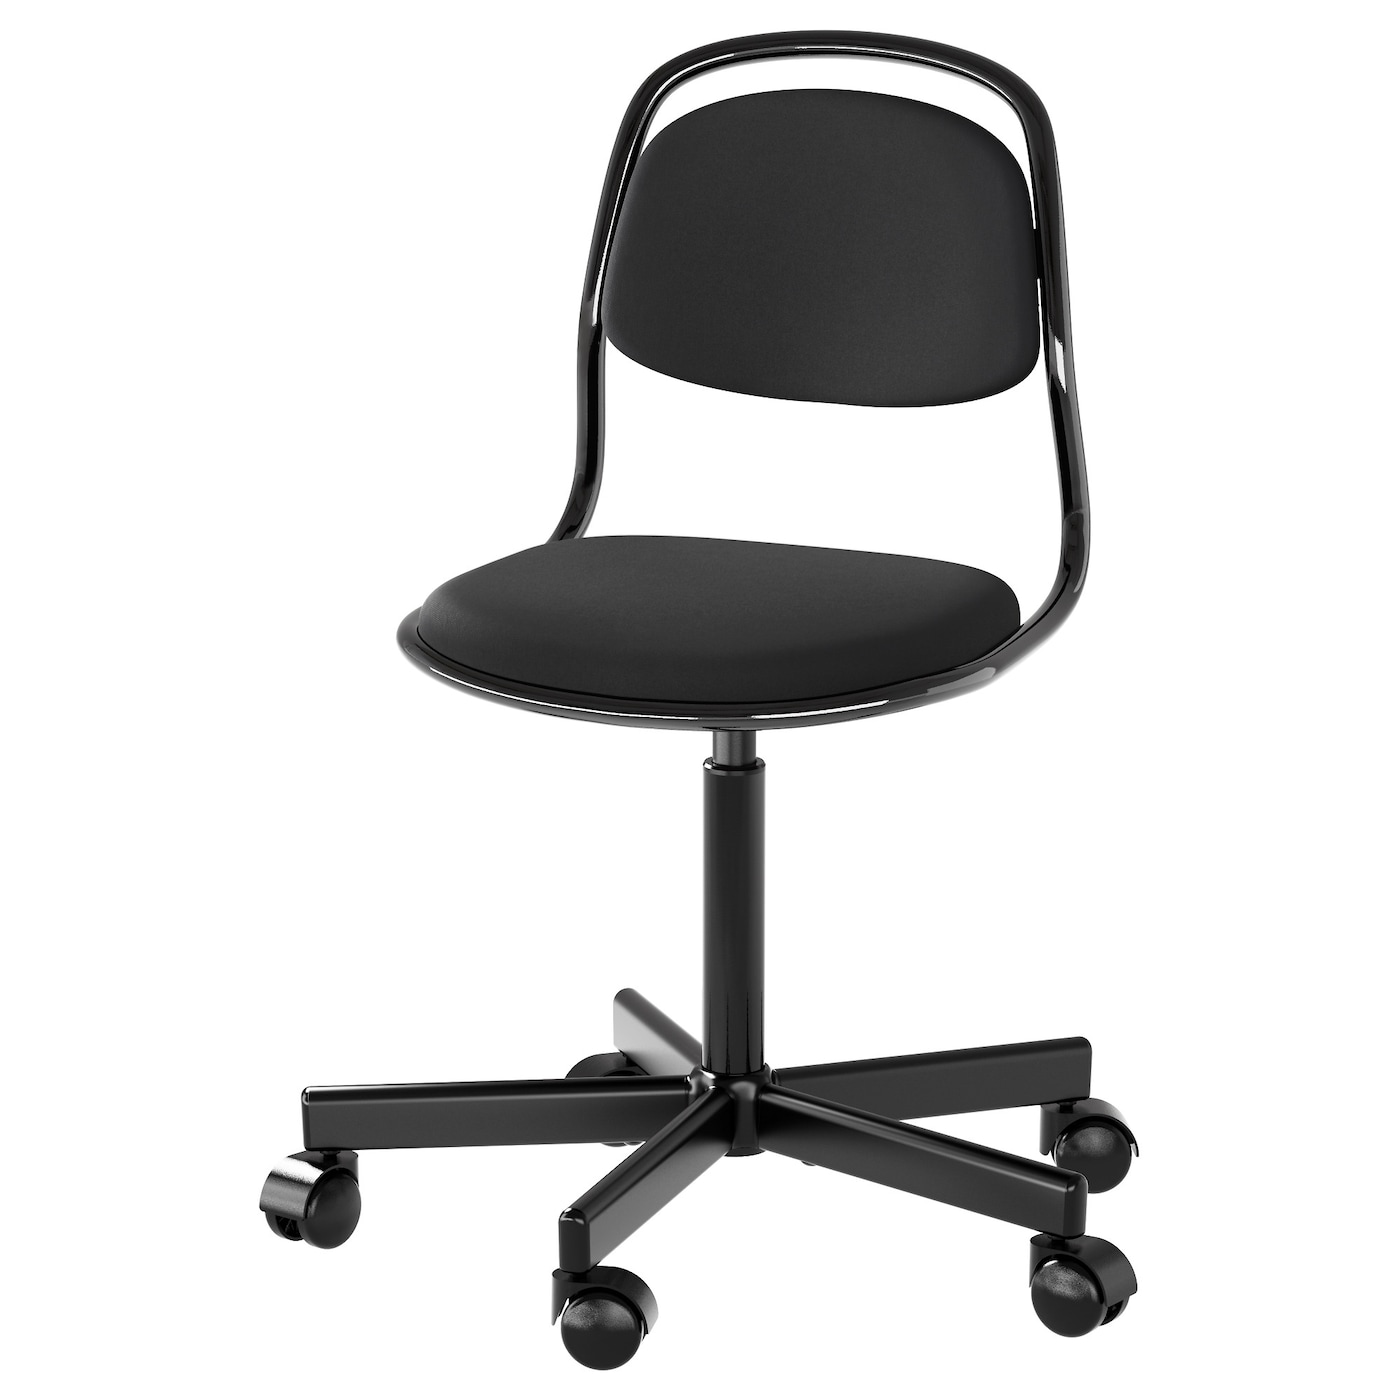 childrens office chair ergonomic ikea rfjll childrens desk chair you sit comfortably since the is adjustable in height childrens blackvissle black